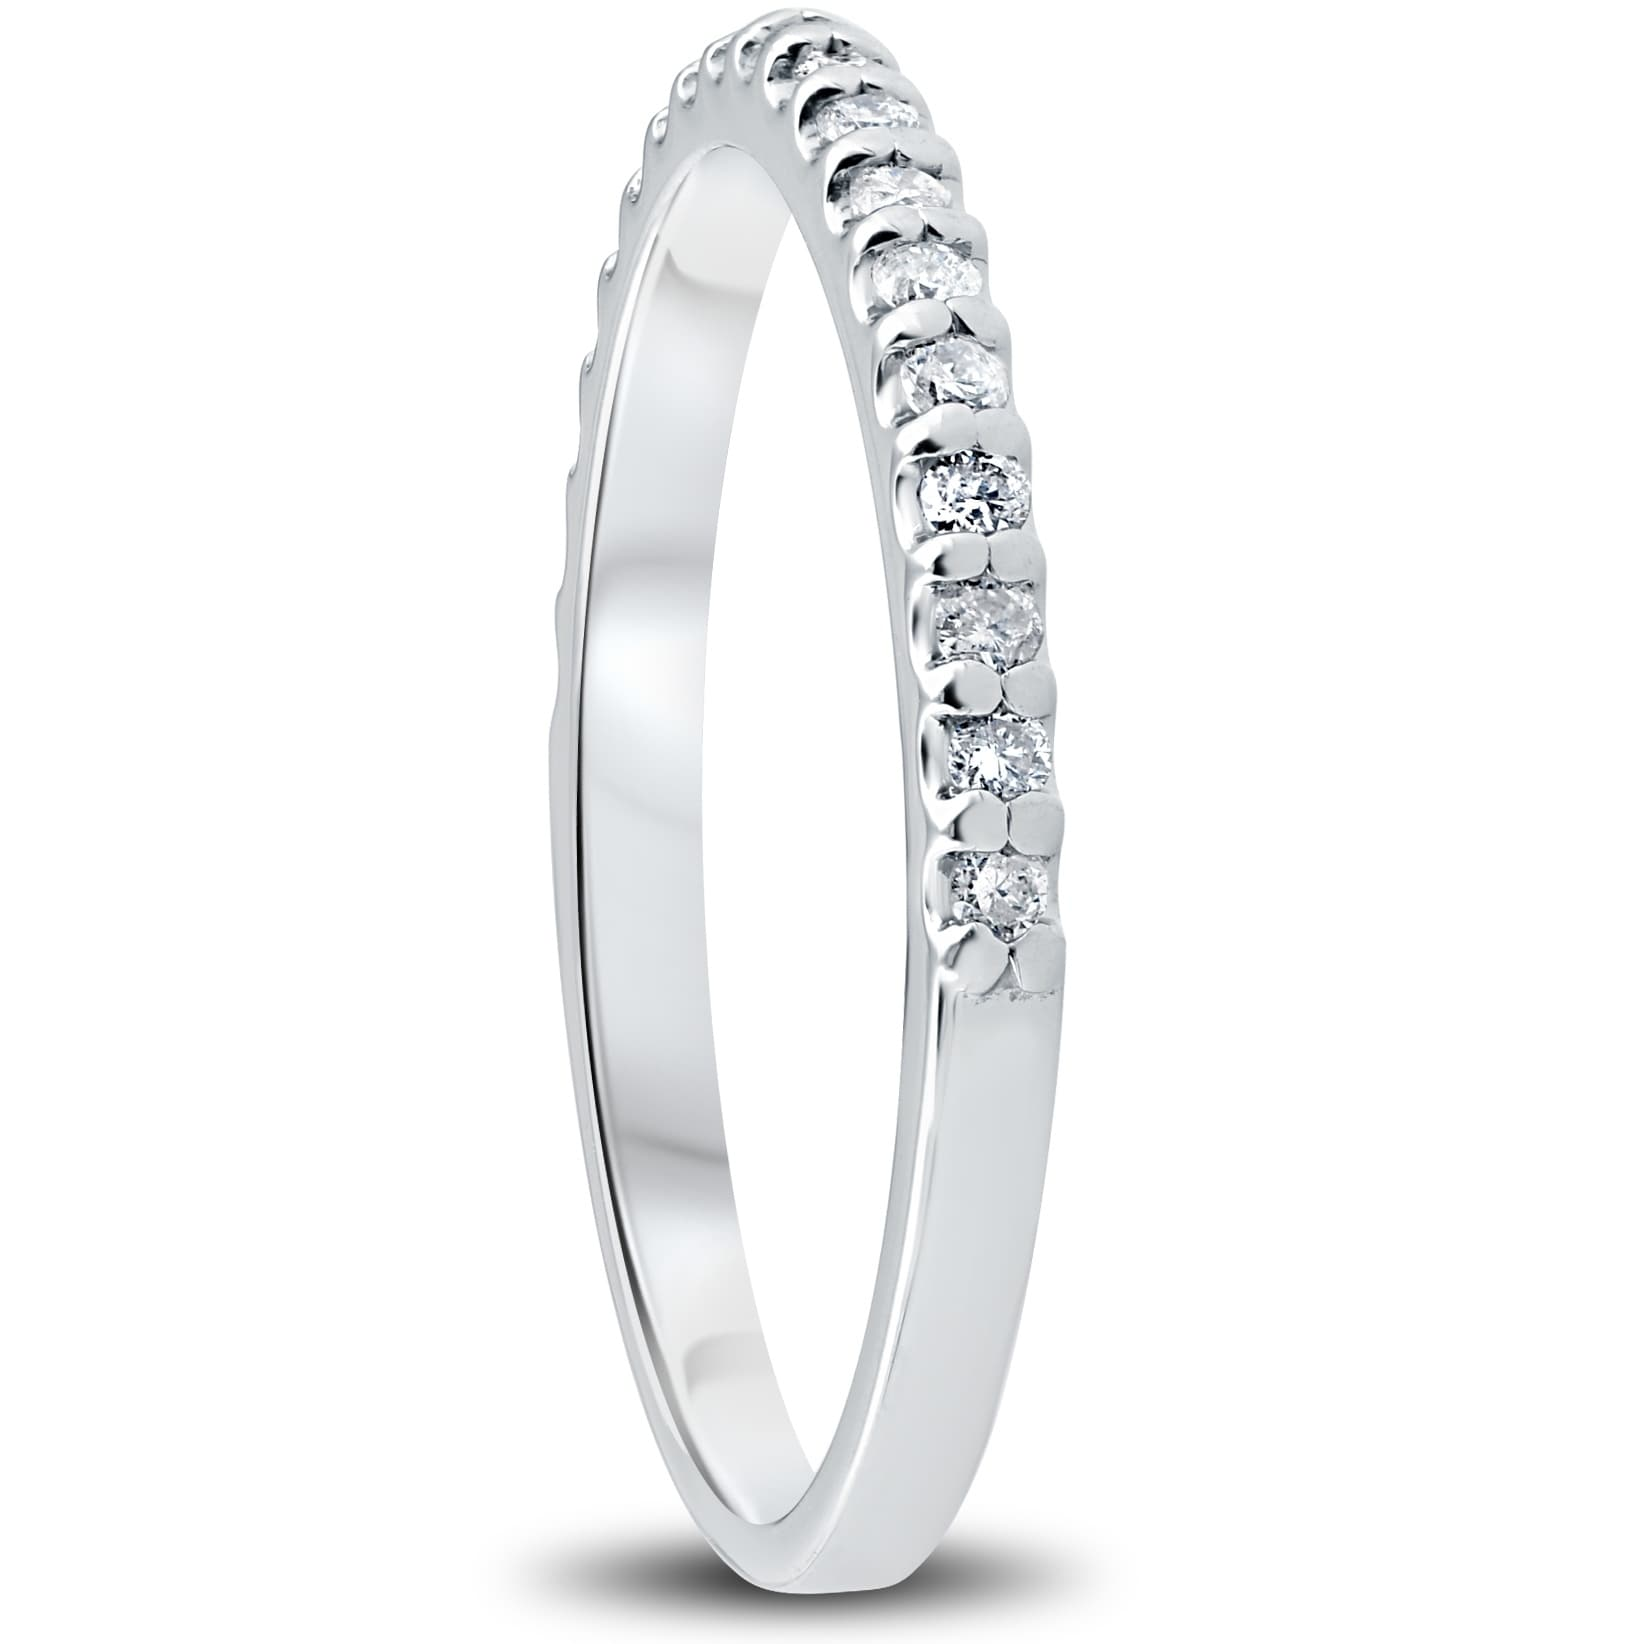 Details about  /10k White Gold Over 3Ct Round-Cut D//VVS1 Diamond Halo Bridal Engagement Ring